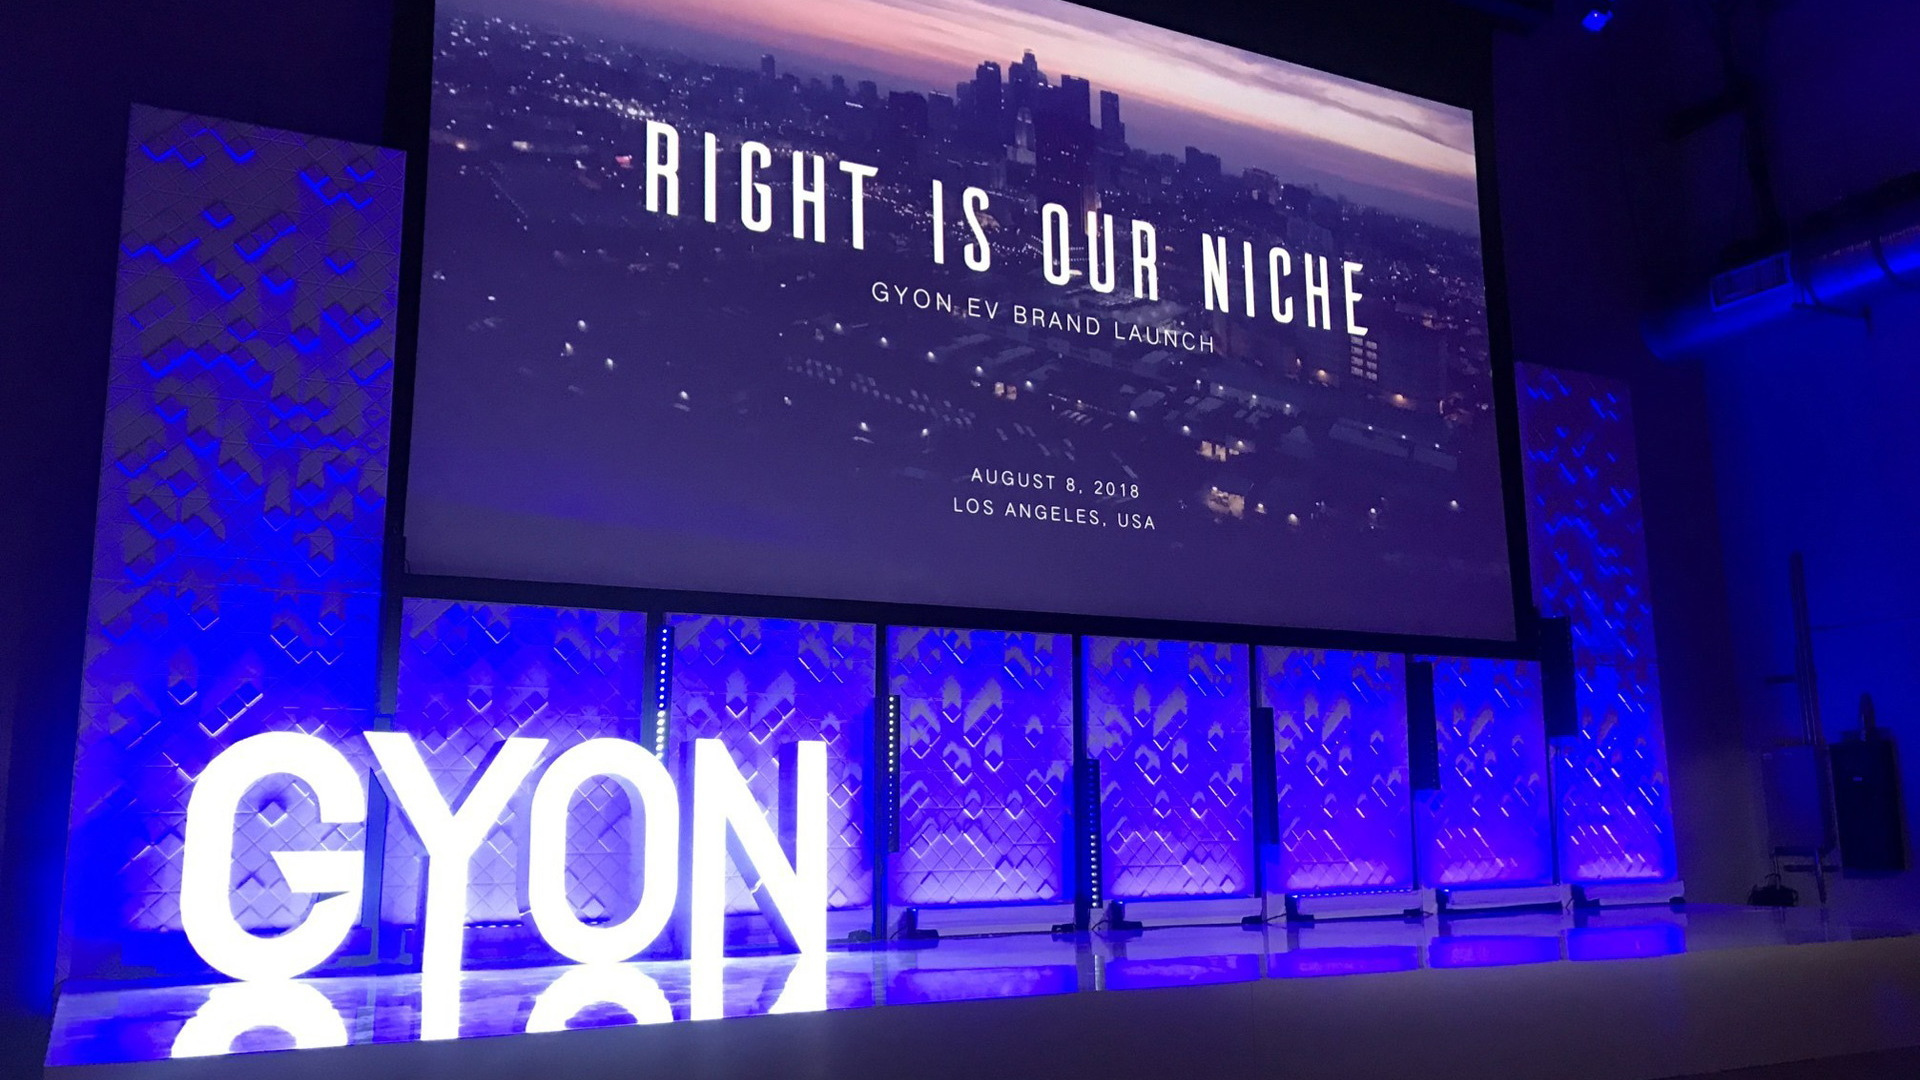 Gyon brand launch in Los Angeles, California